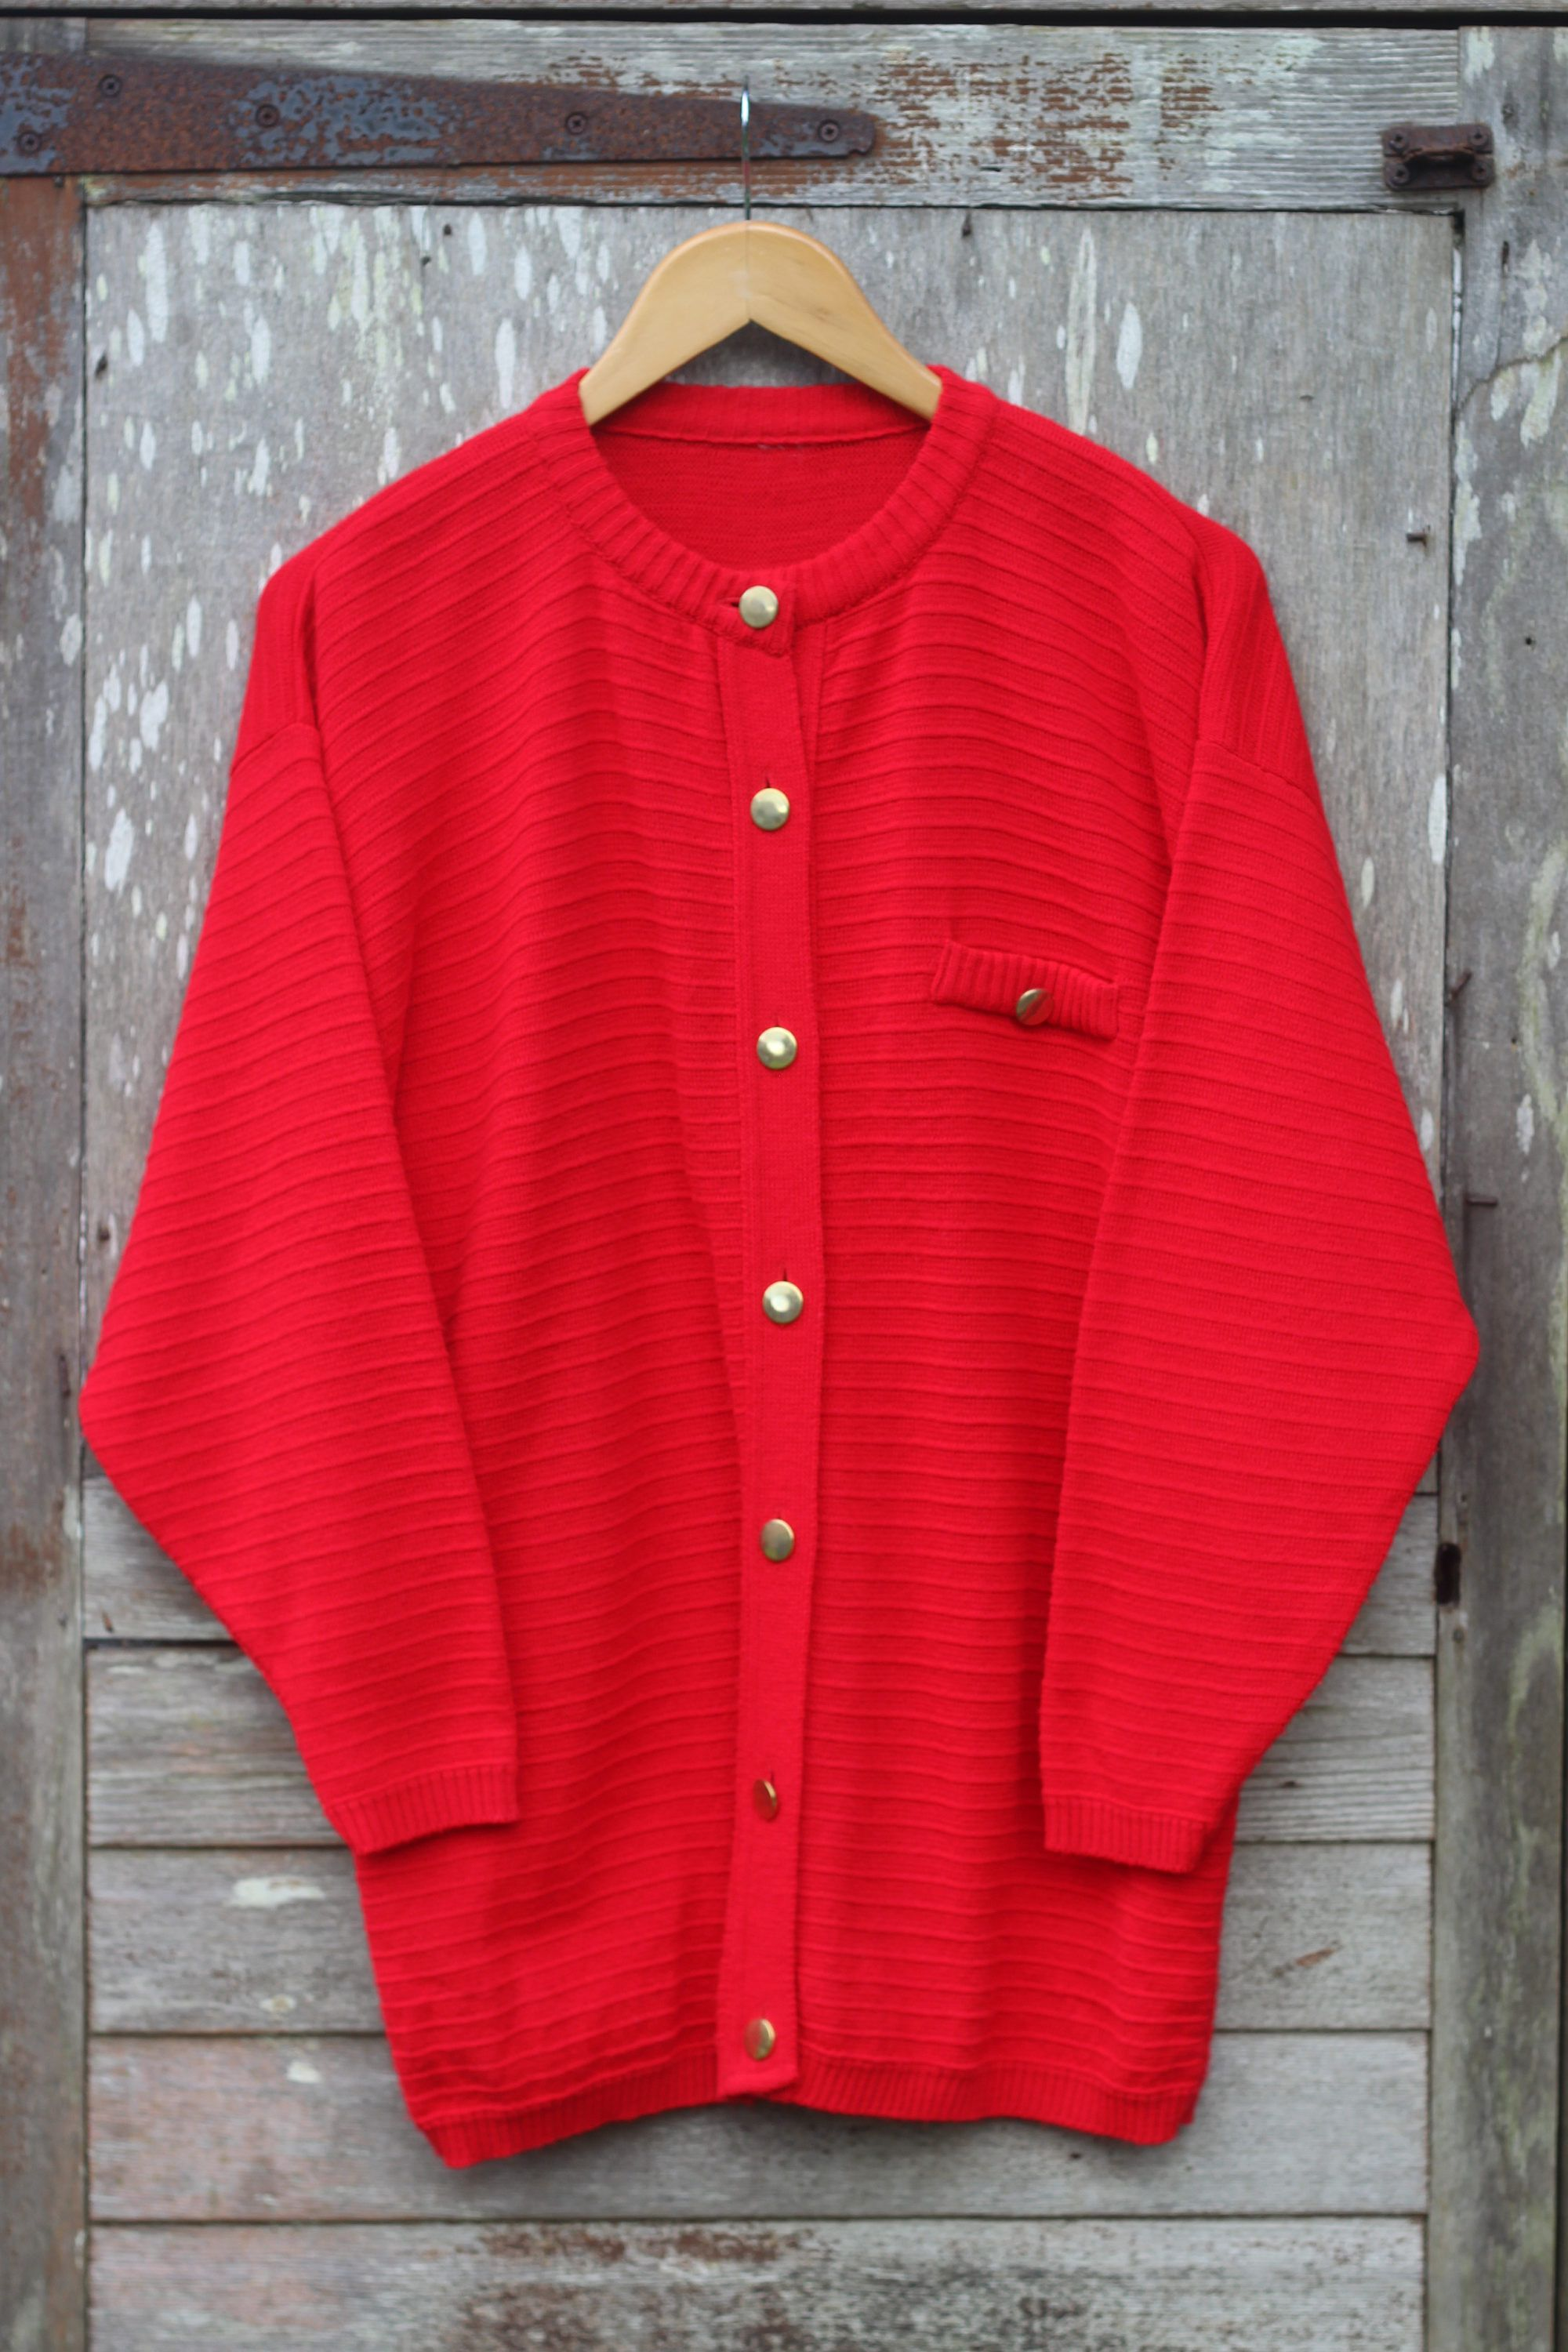 Vintage Red Knit Cardigan with Bronze Buttons 41aR2FGltC